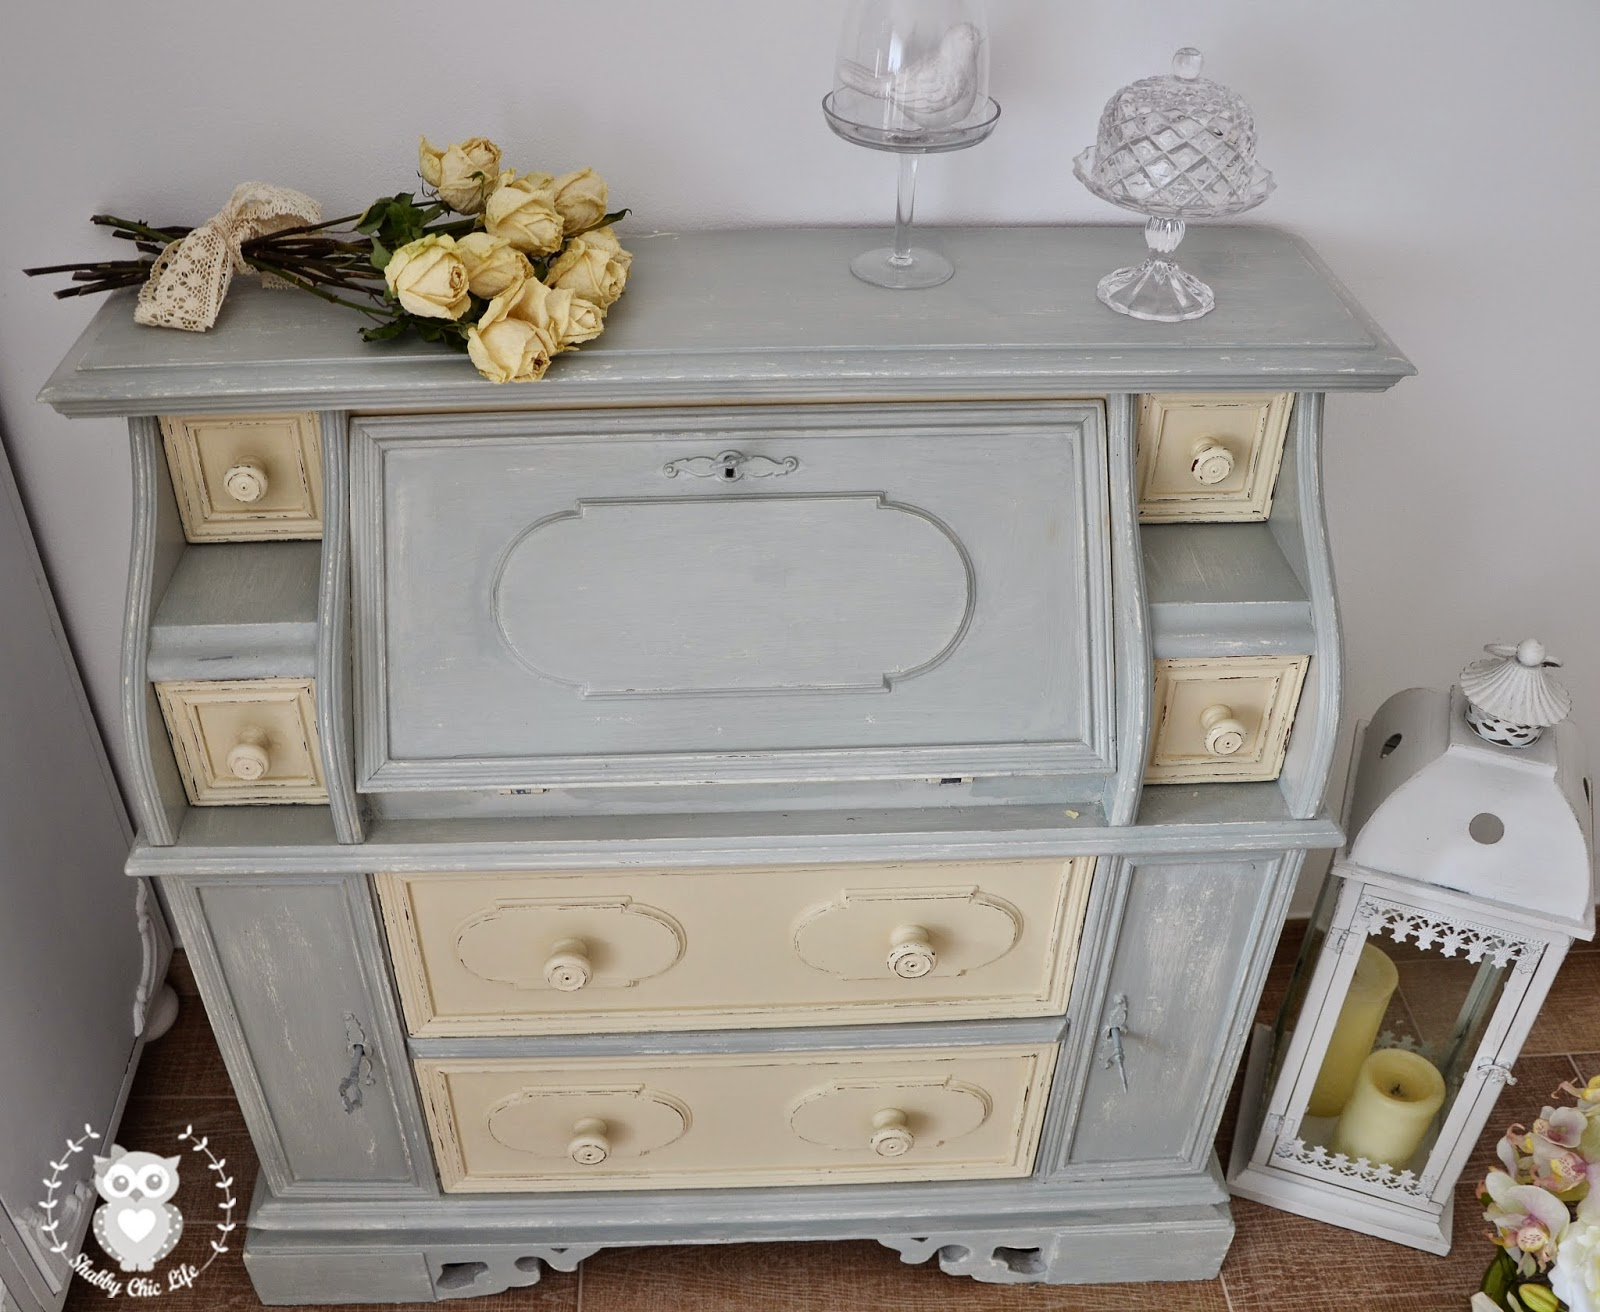 Quadri stile shabby. affordable quadri provenzali roma with quadri